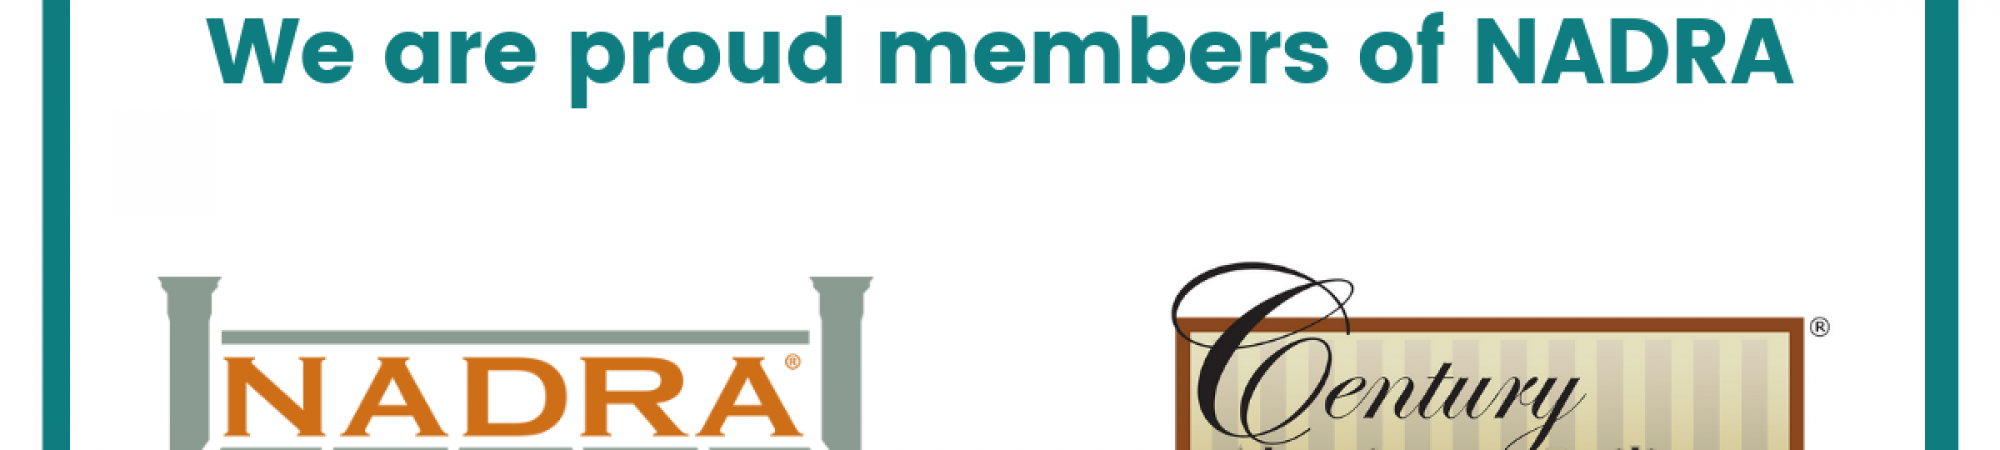 We are proud members of NADRA (North American Deck and Railing Association).